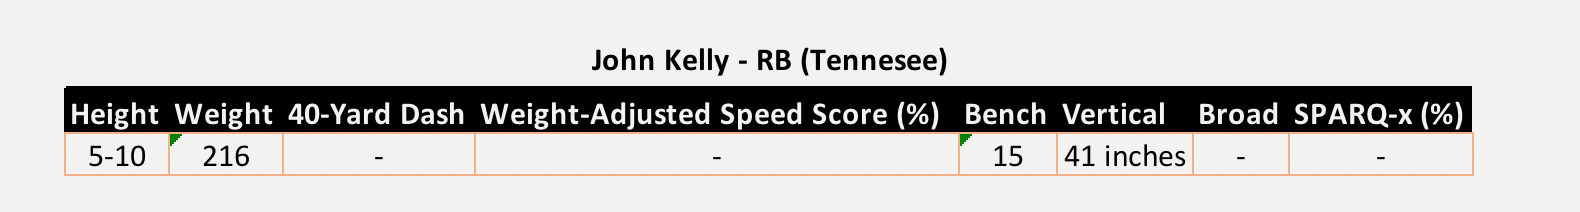 John Kelly Tennessee NFL Combine Results 2018